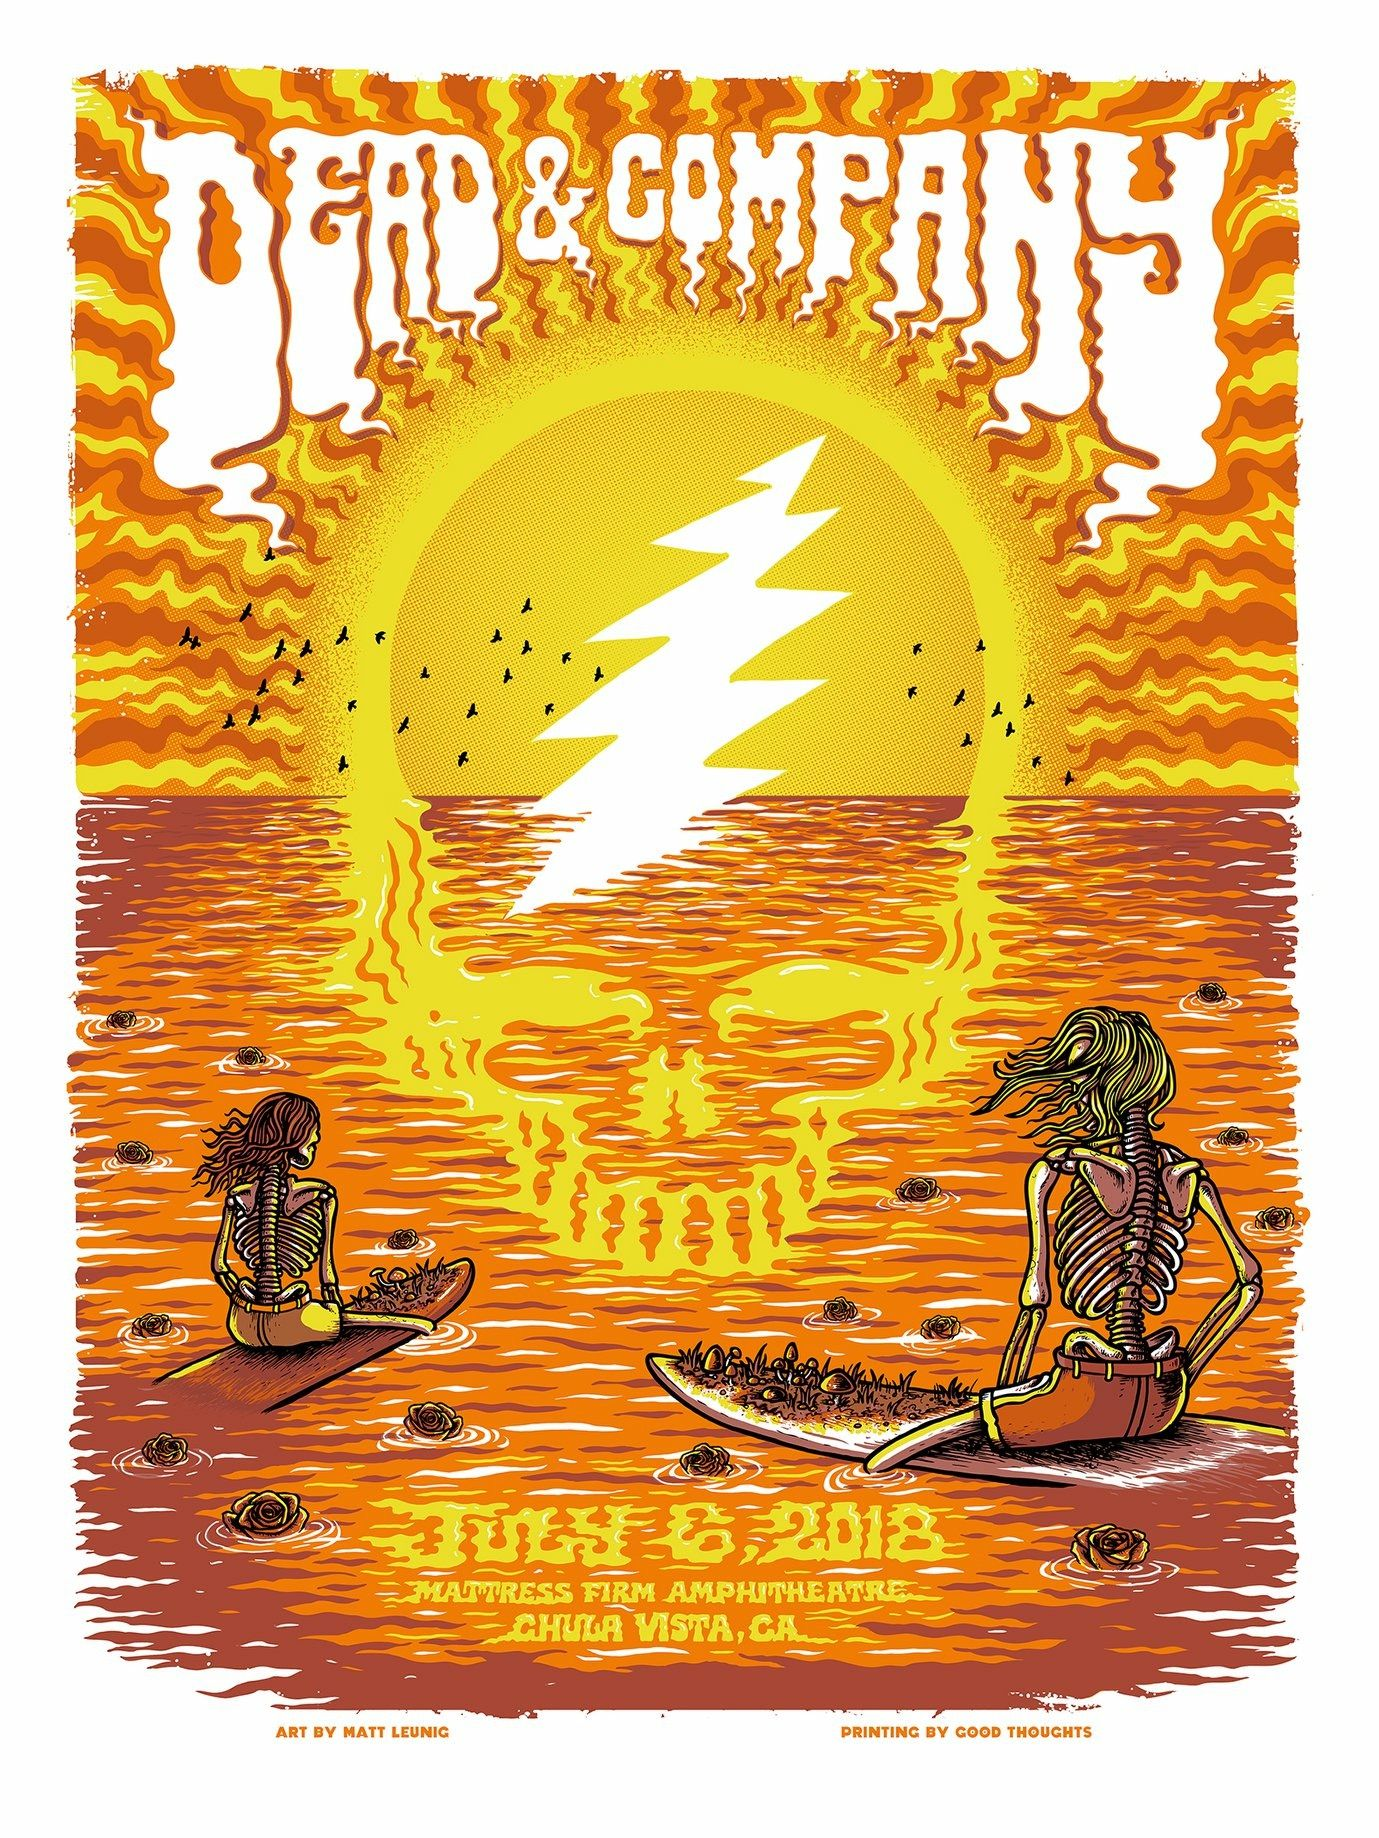 Pin by Bill Barfield on Dead & Co Posters Dead and